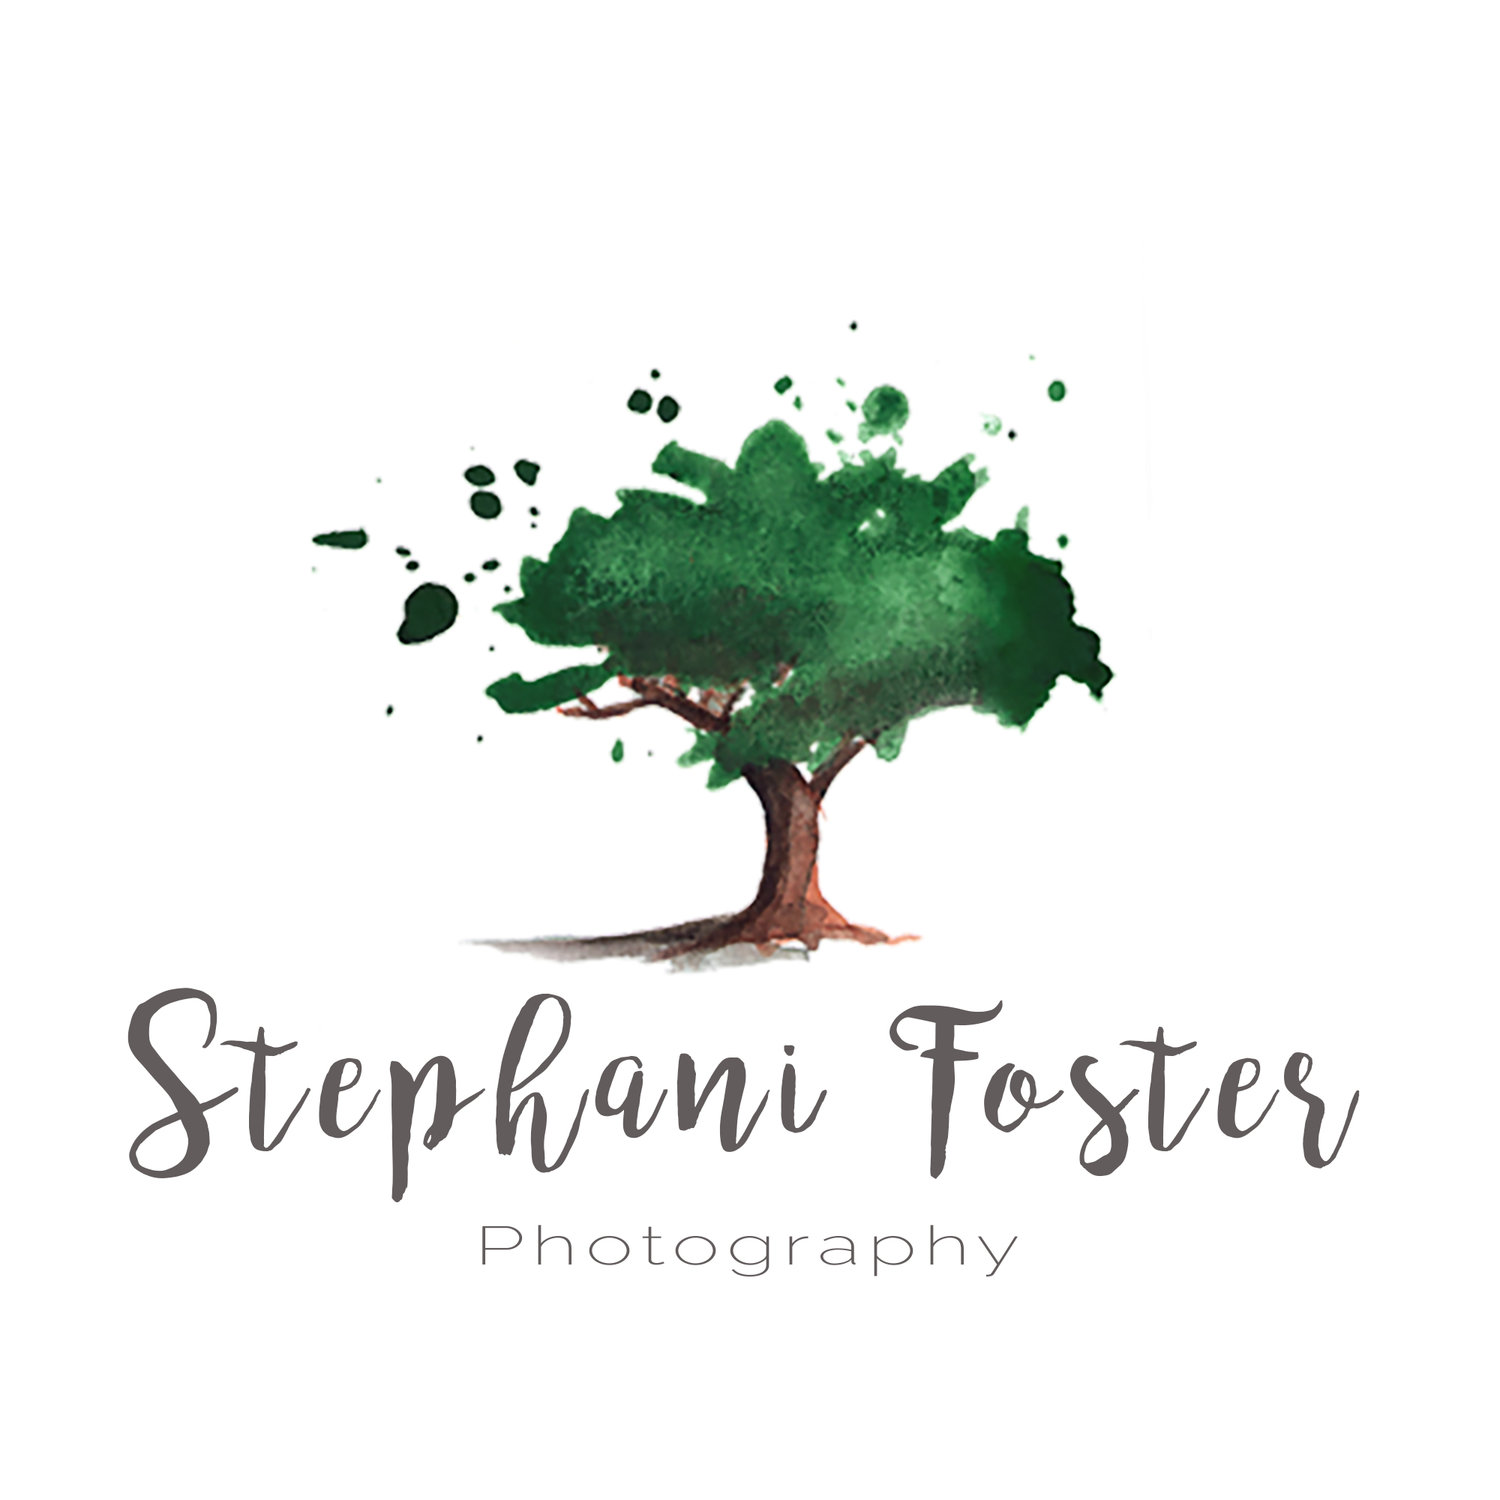 Stephani Foster Photography